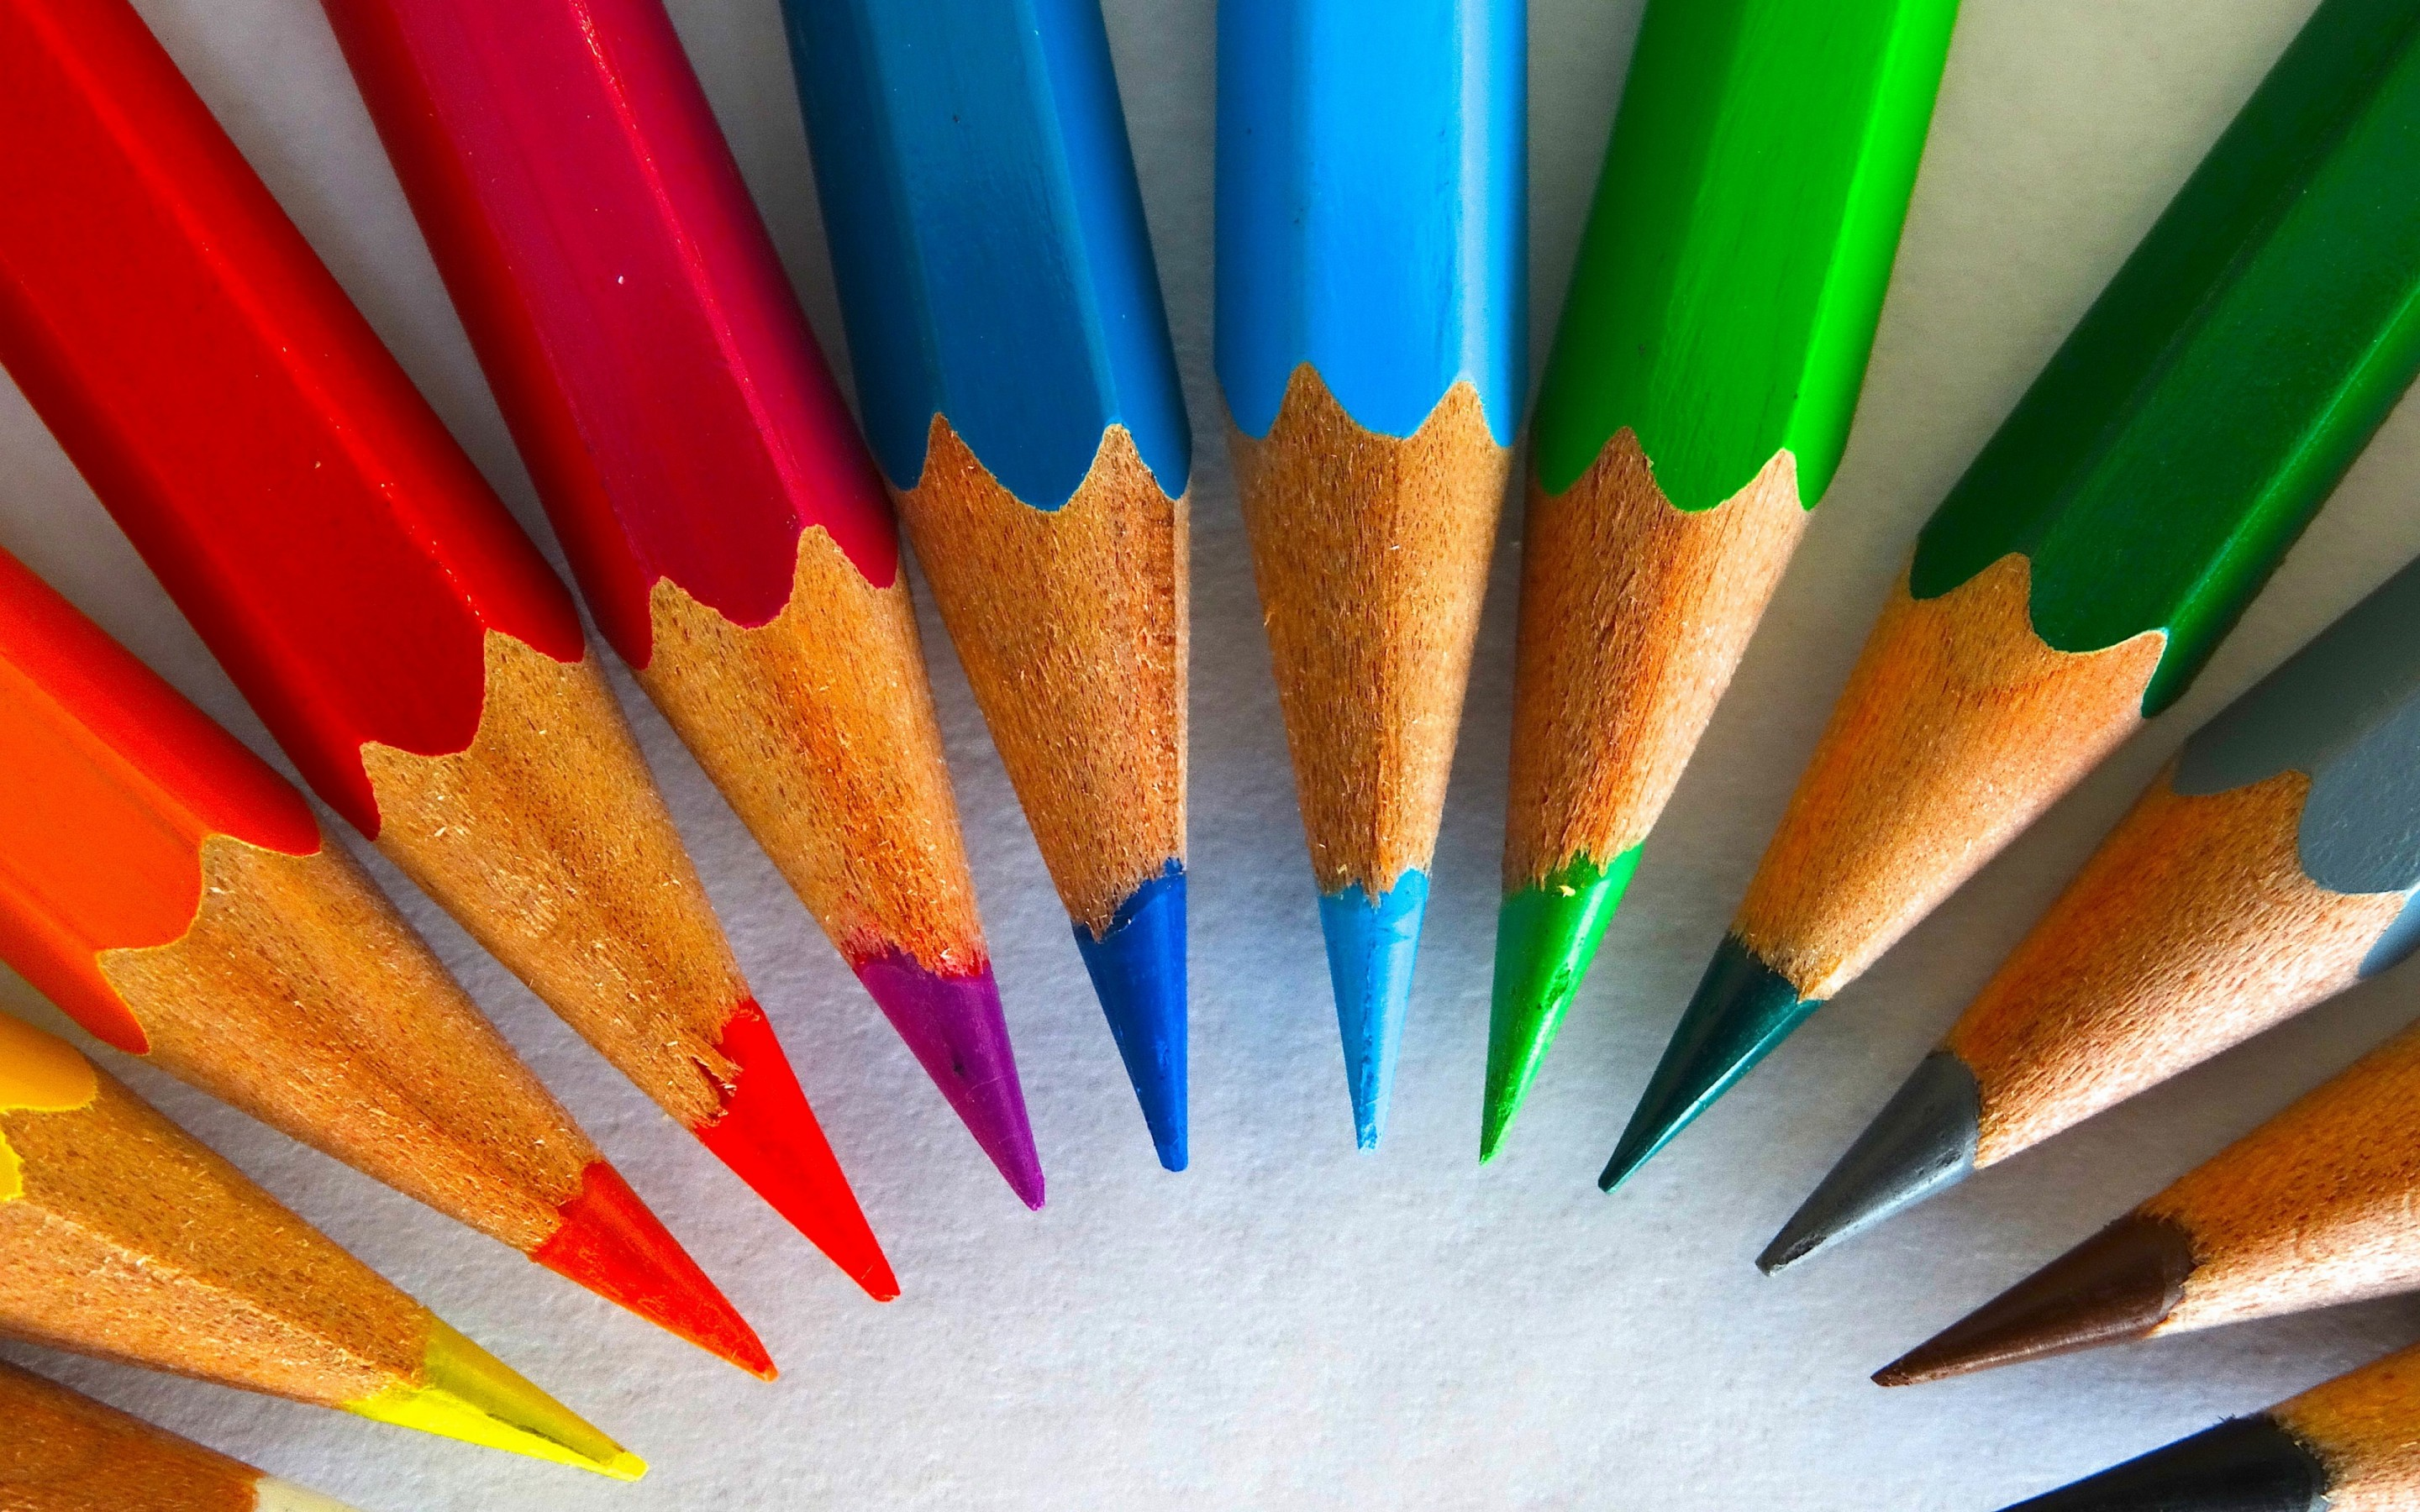 Background Rainbow Colored Pencils - HD Wallpaper